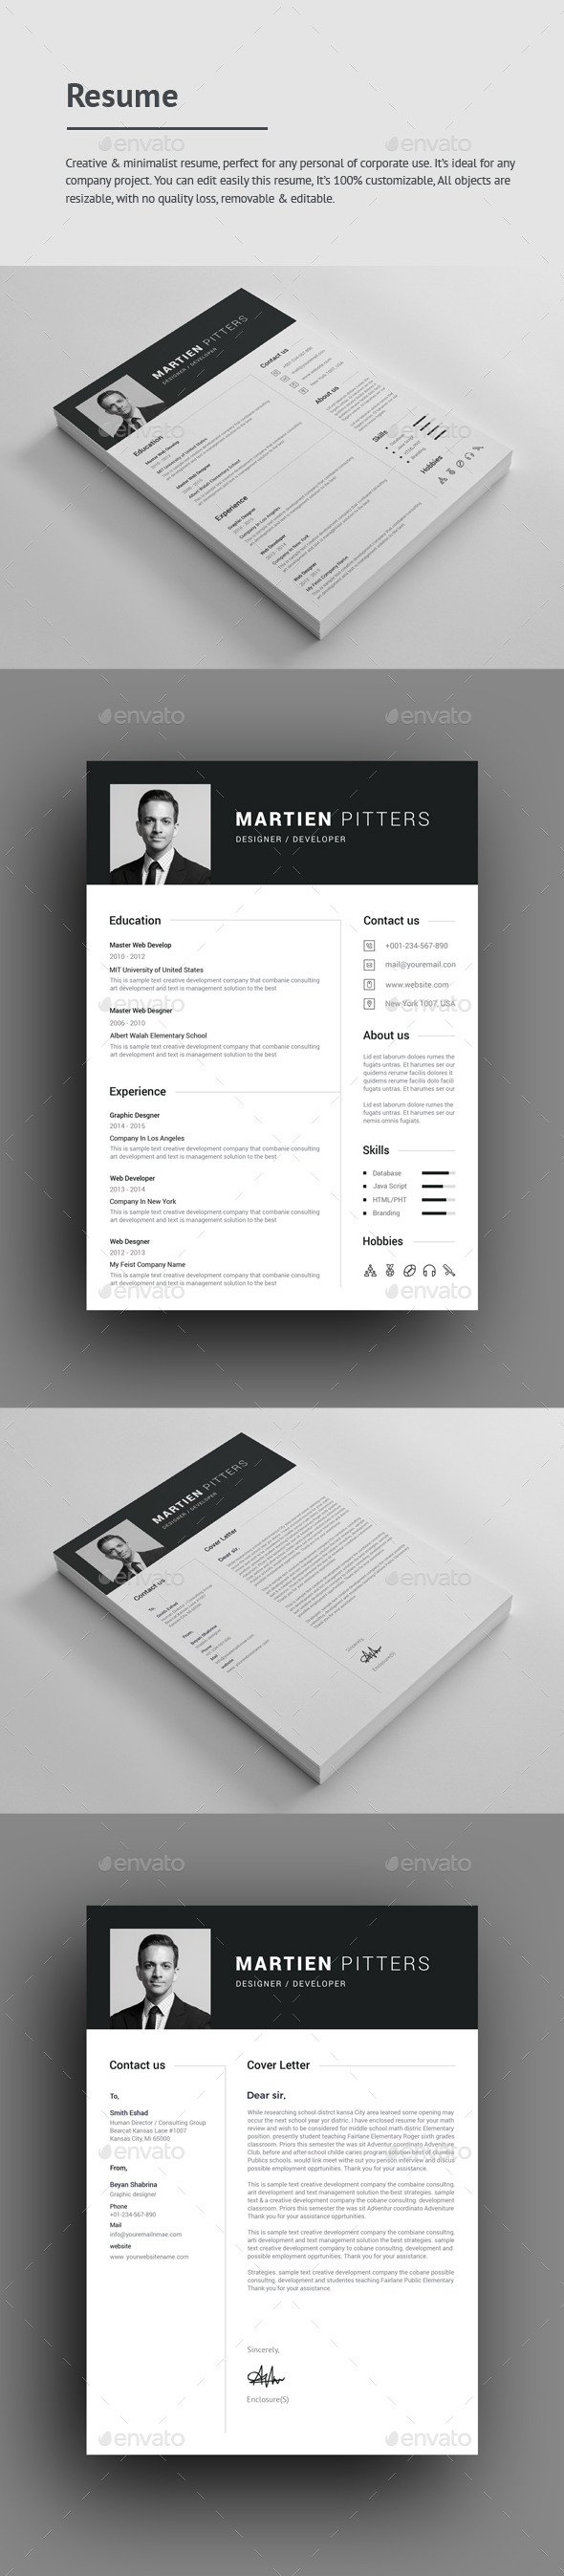 Resume Cv Format Resume Templates From Graphicriver Warrant Officer Resume Excel with Resume Description For Server  Recruiter Resumes Excel